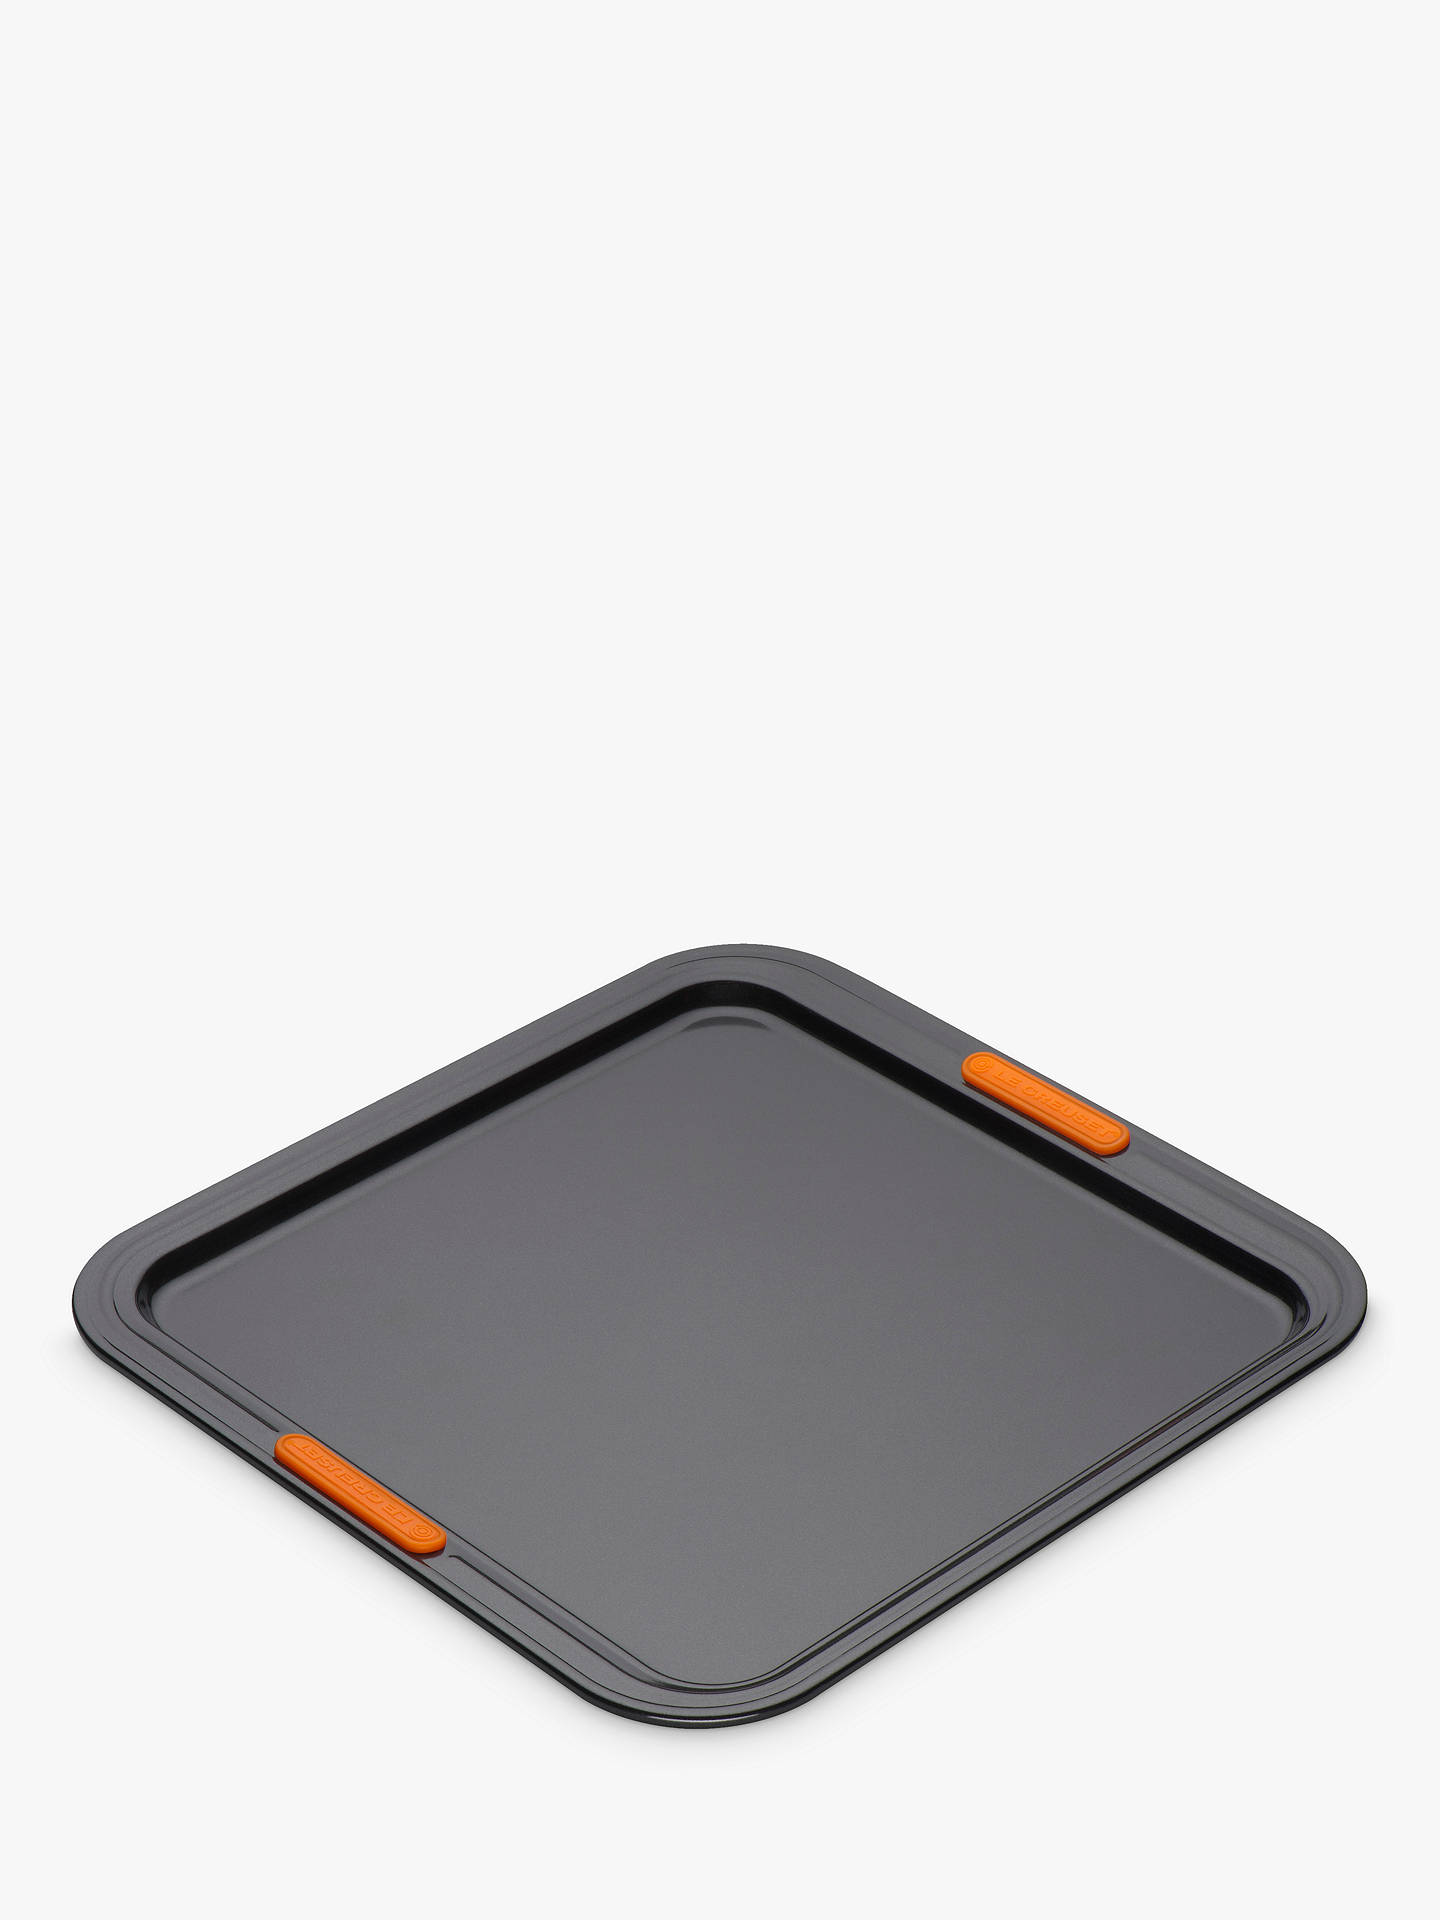 BuyLe Creuset 31cm Baking Tray Online at johnlewis.com